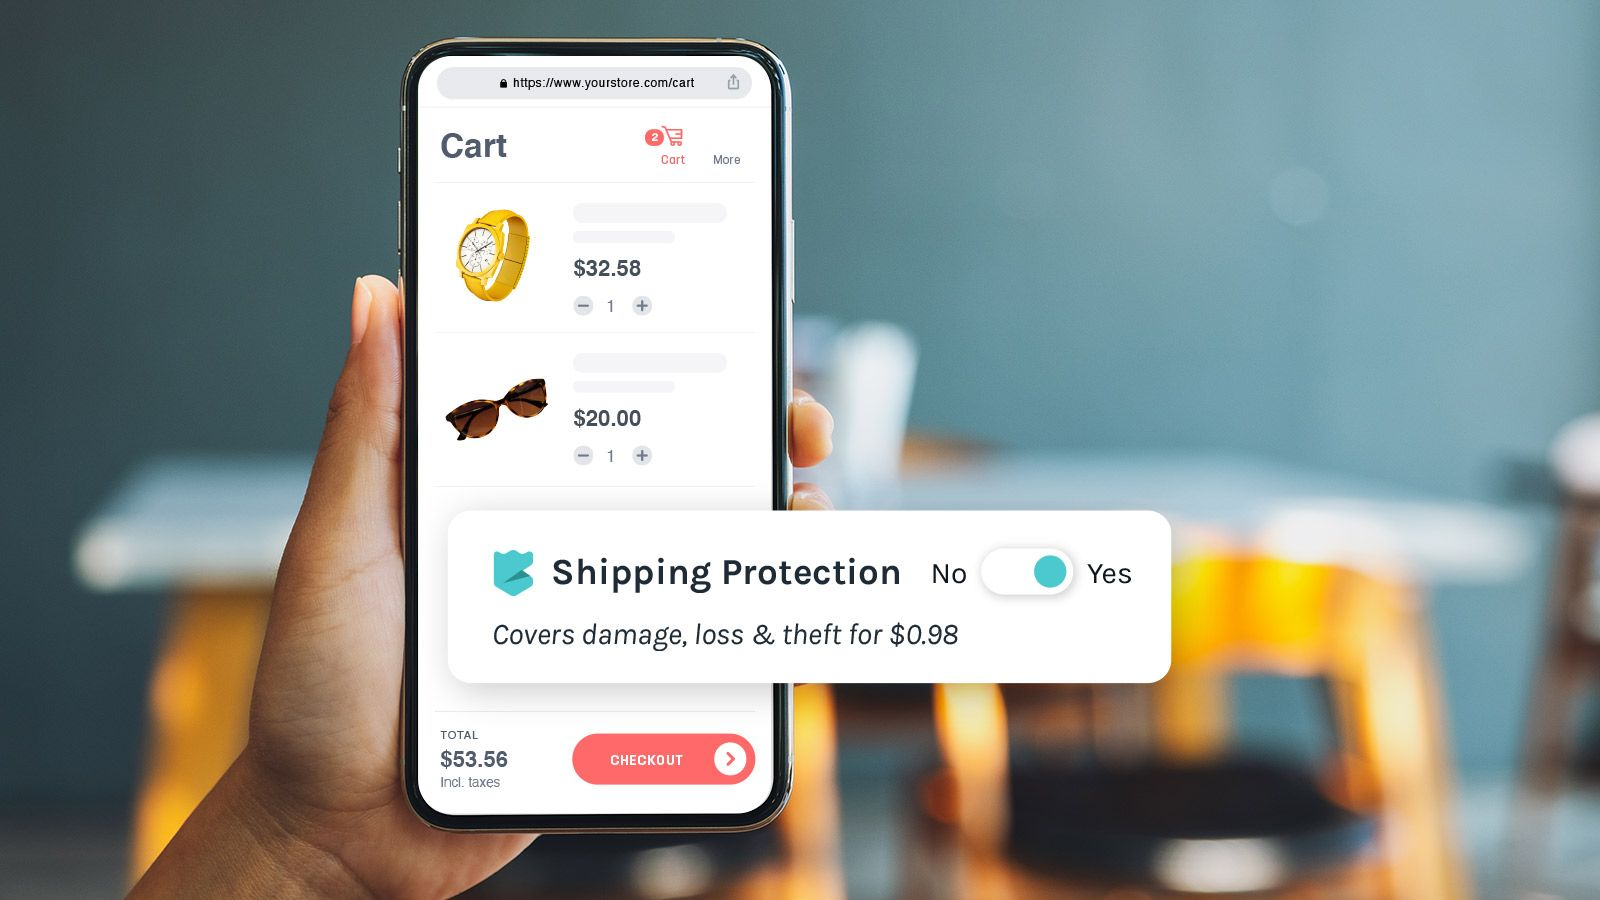 Boost Sales with Insurance at Checkout from Easyship